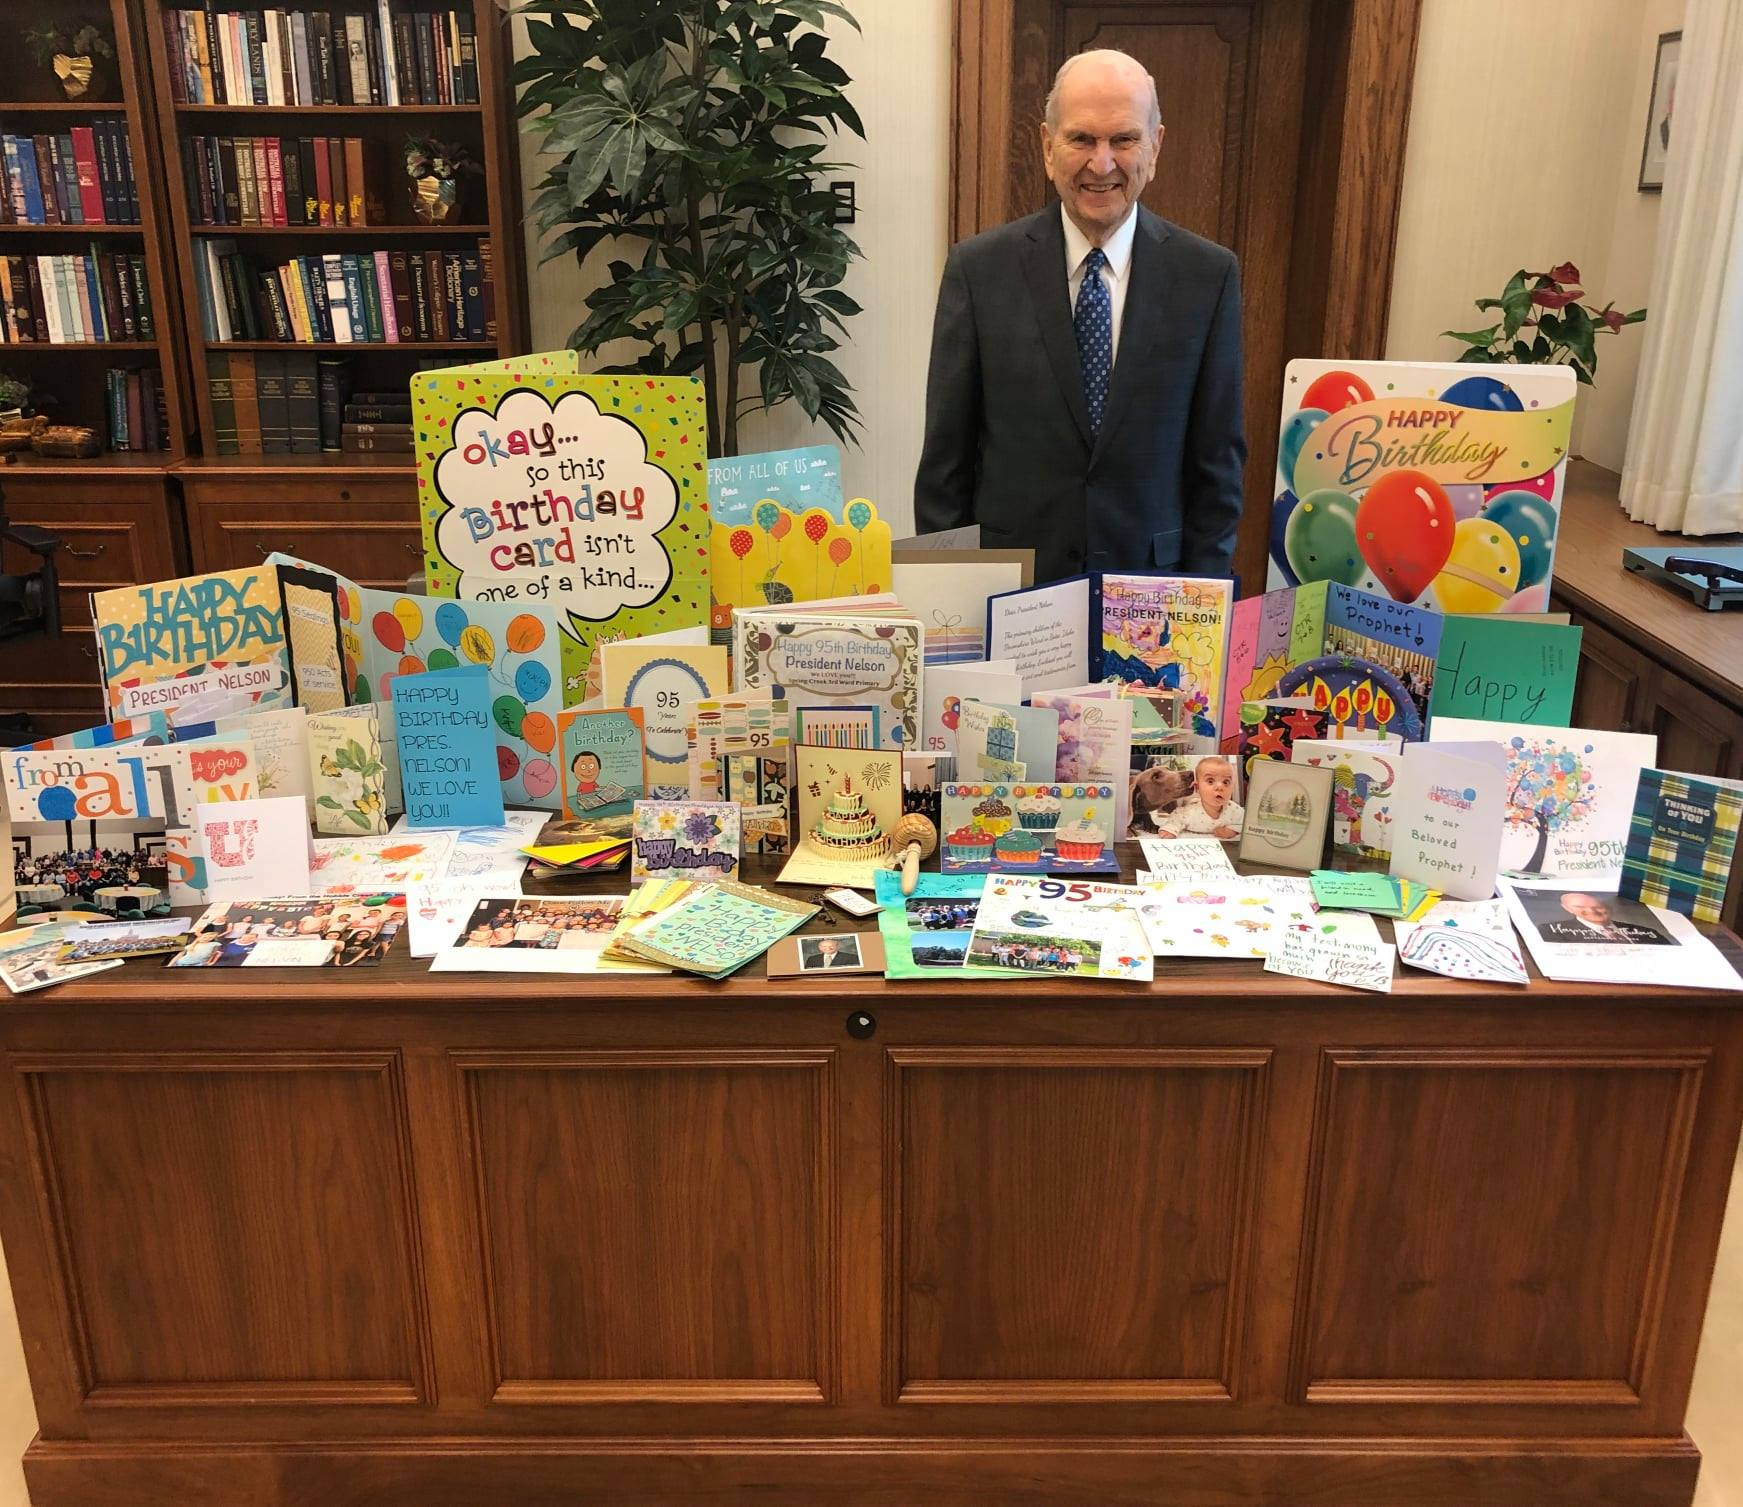 President Russell M. Nelson stands in front of his desk full of birthday cards and letters from friends around the world.